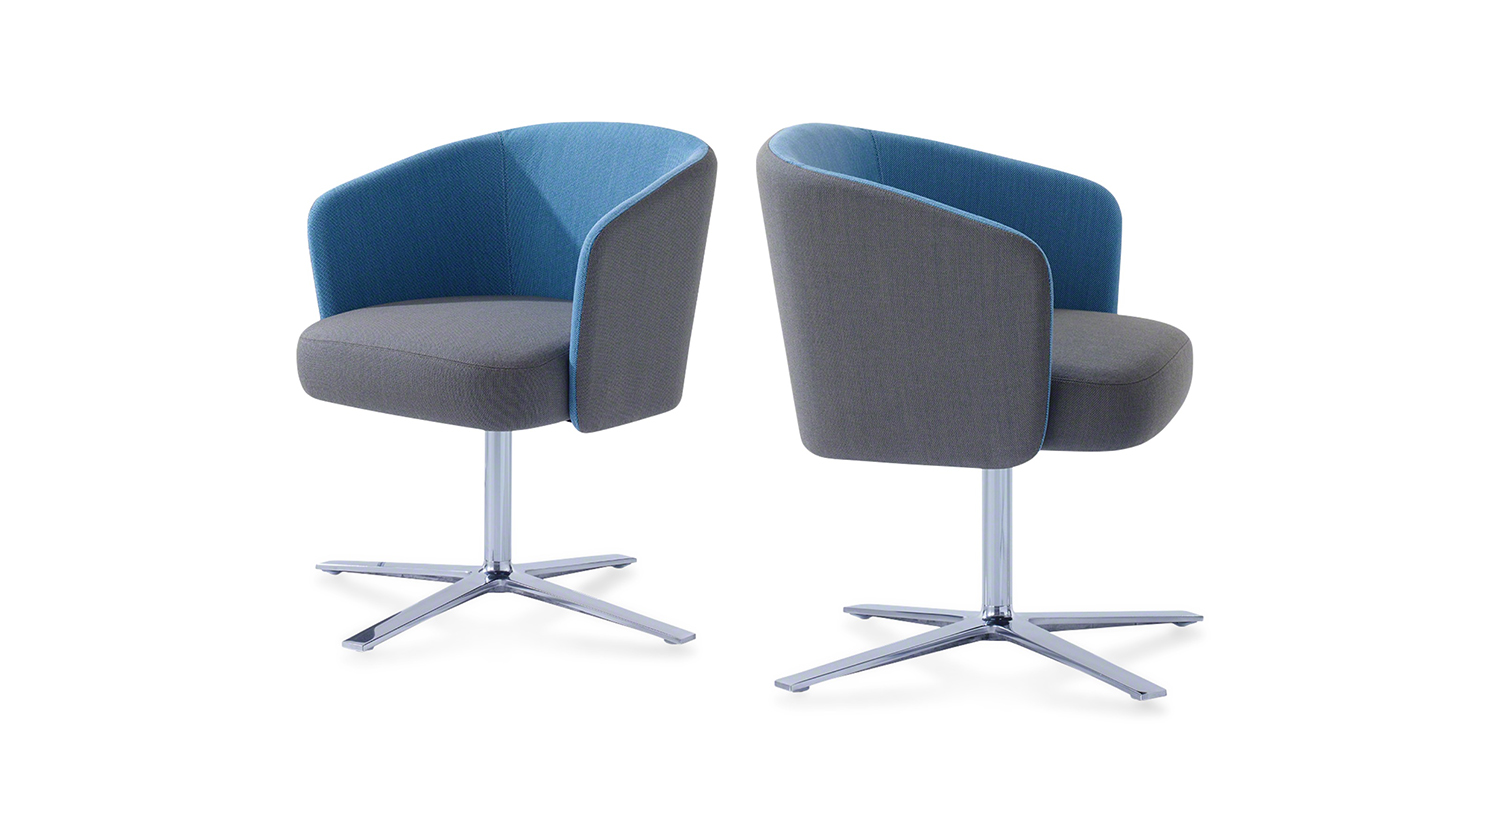 Two Hay modern chairs with grey cushion on the seat and blue cushion on the back